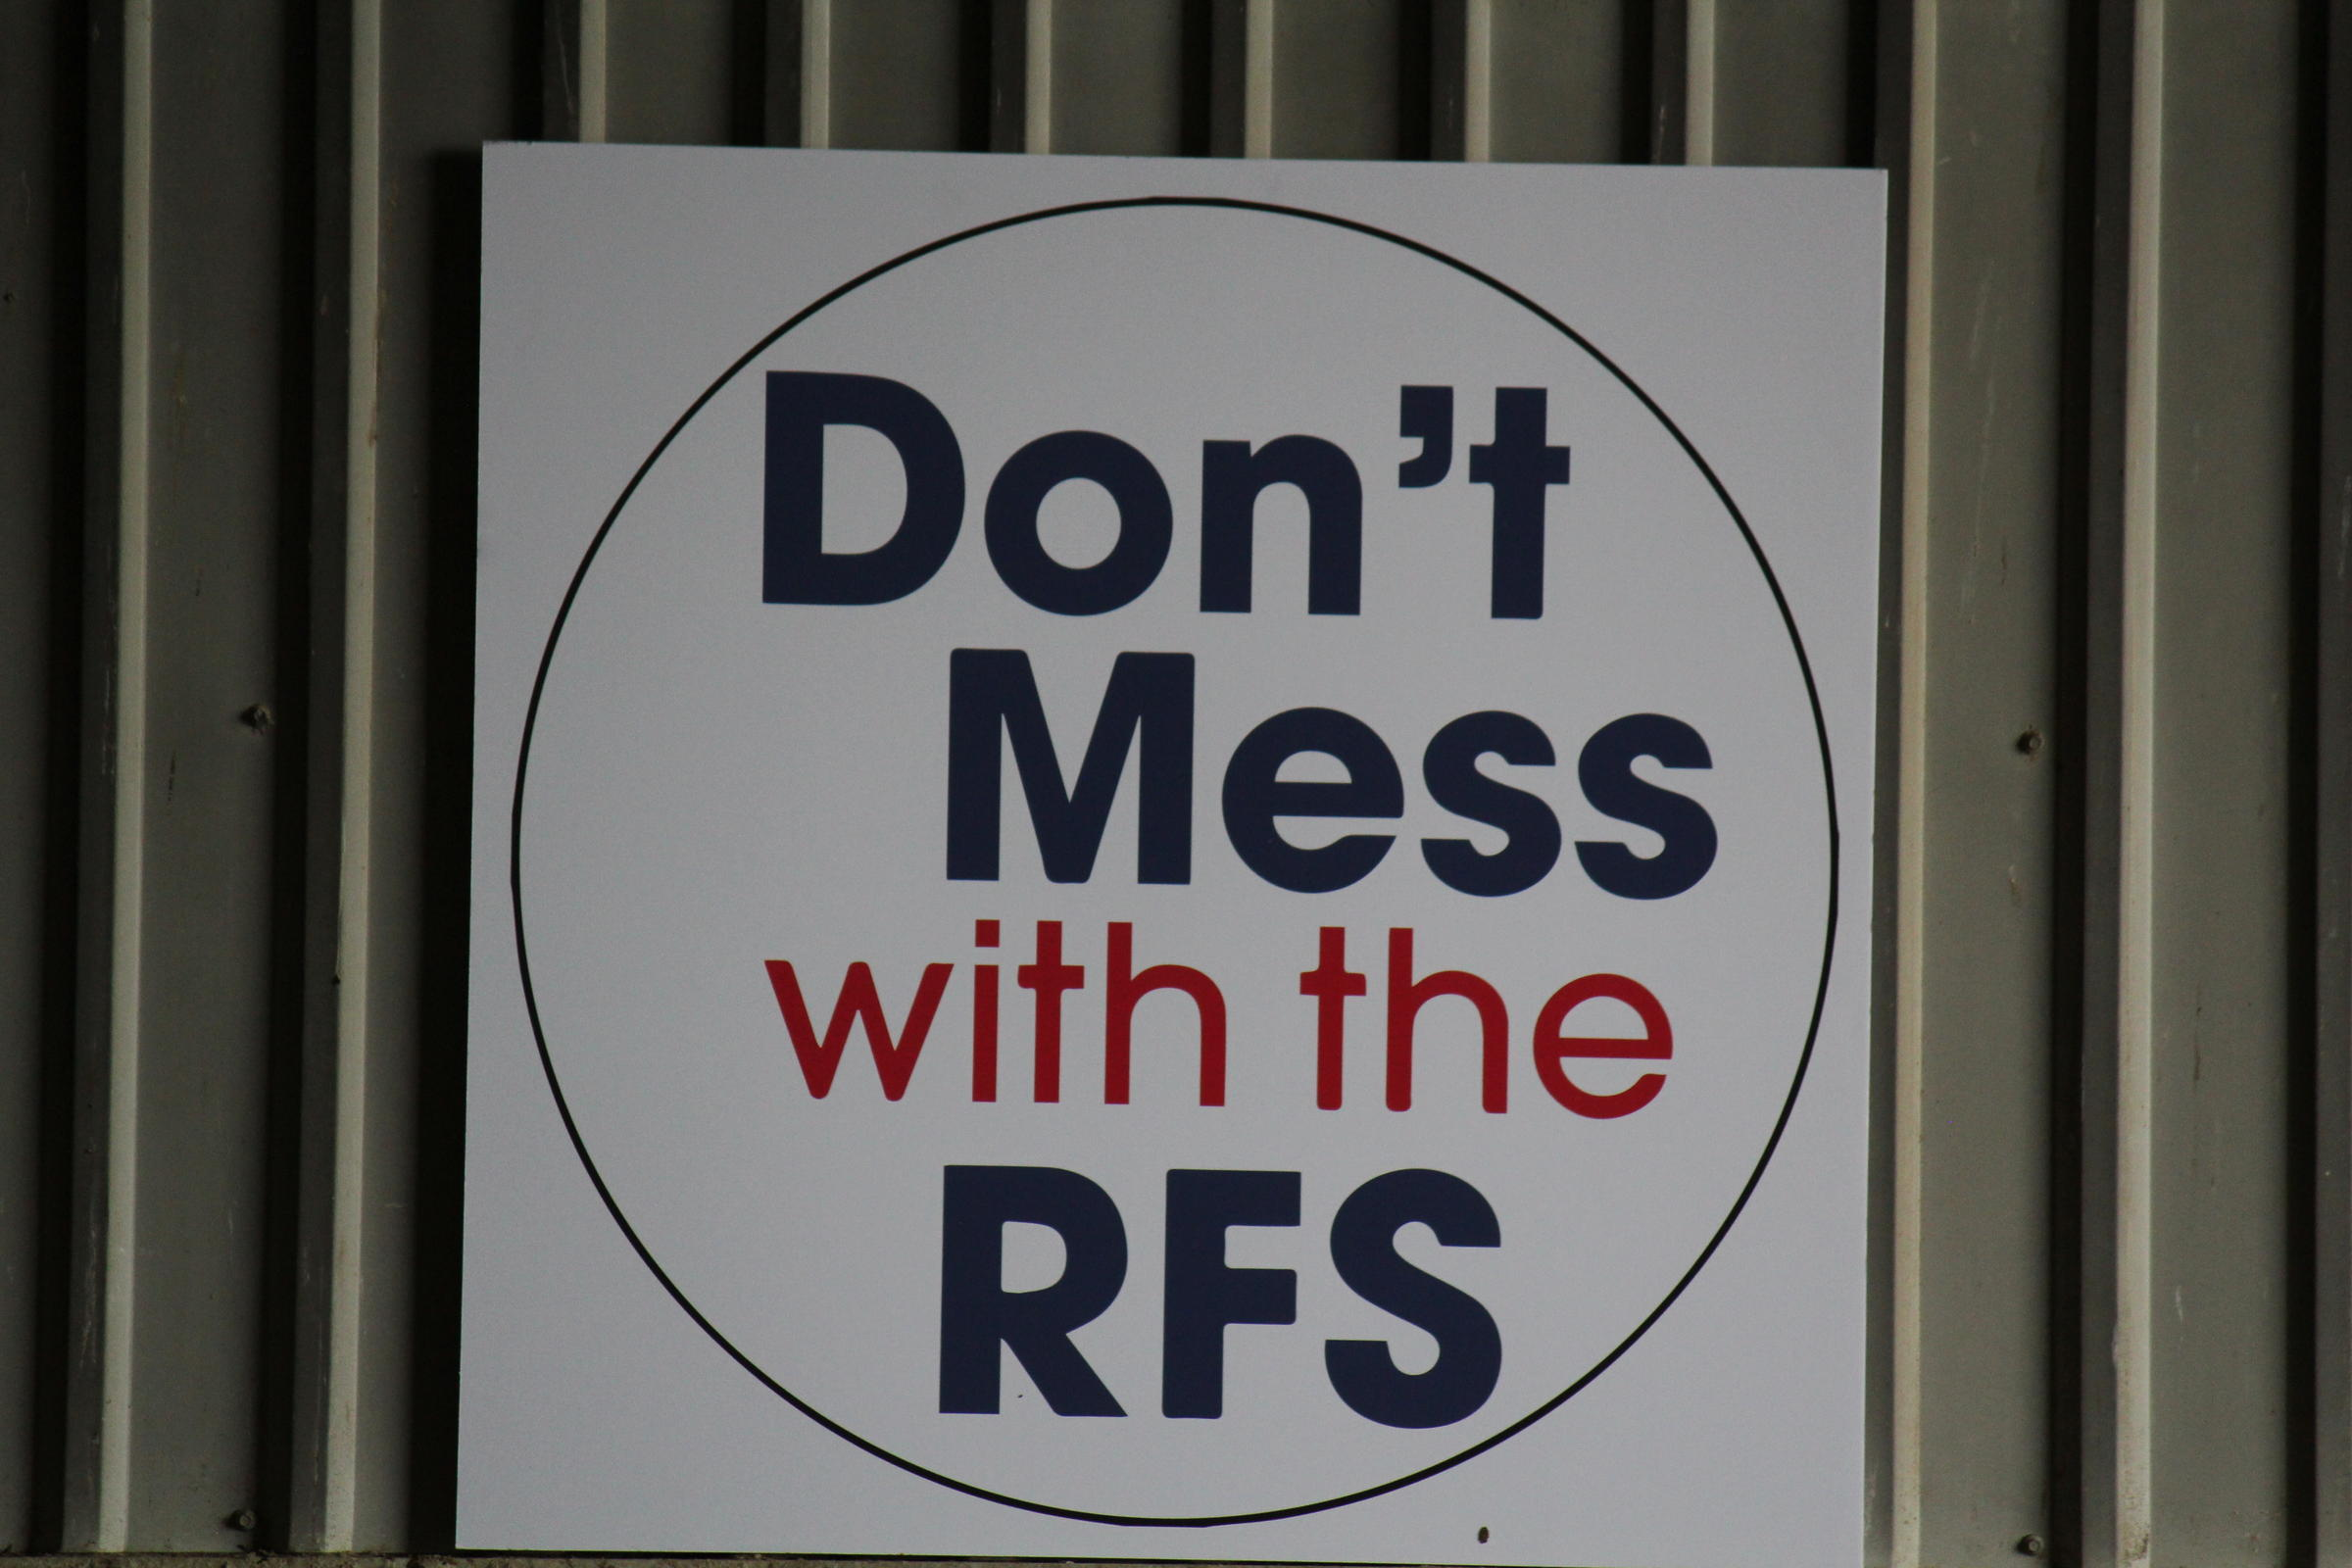 Protecting the Renewable Fuel Standard is a priority for officials from corn-producing states as shown by this sign at an RFS rally in Iowa a few years ago